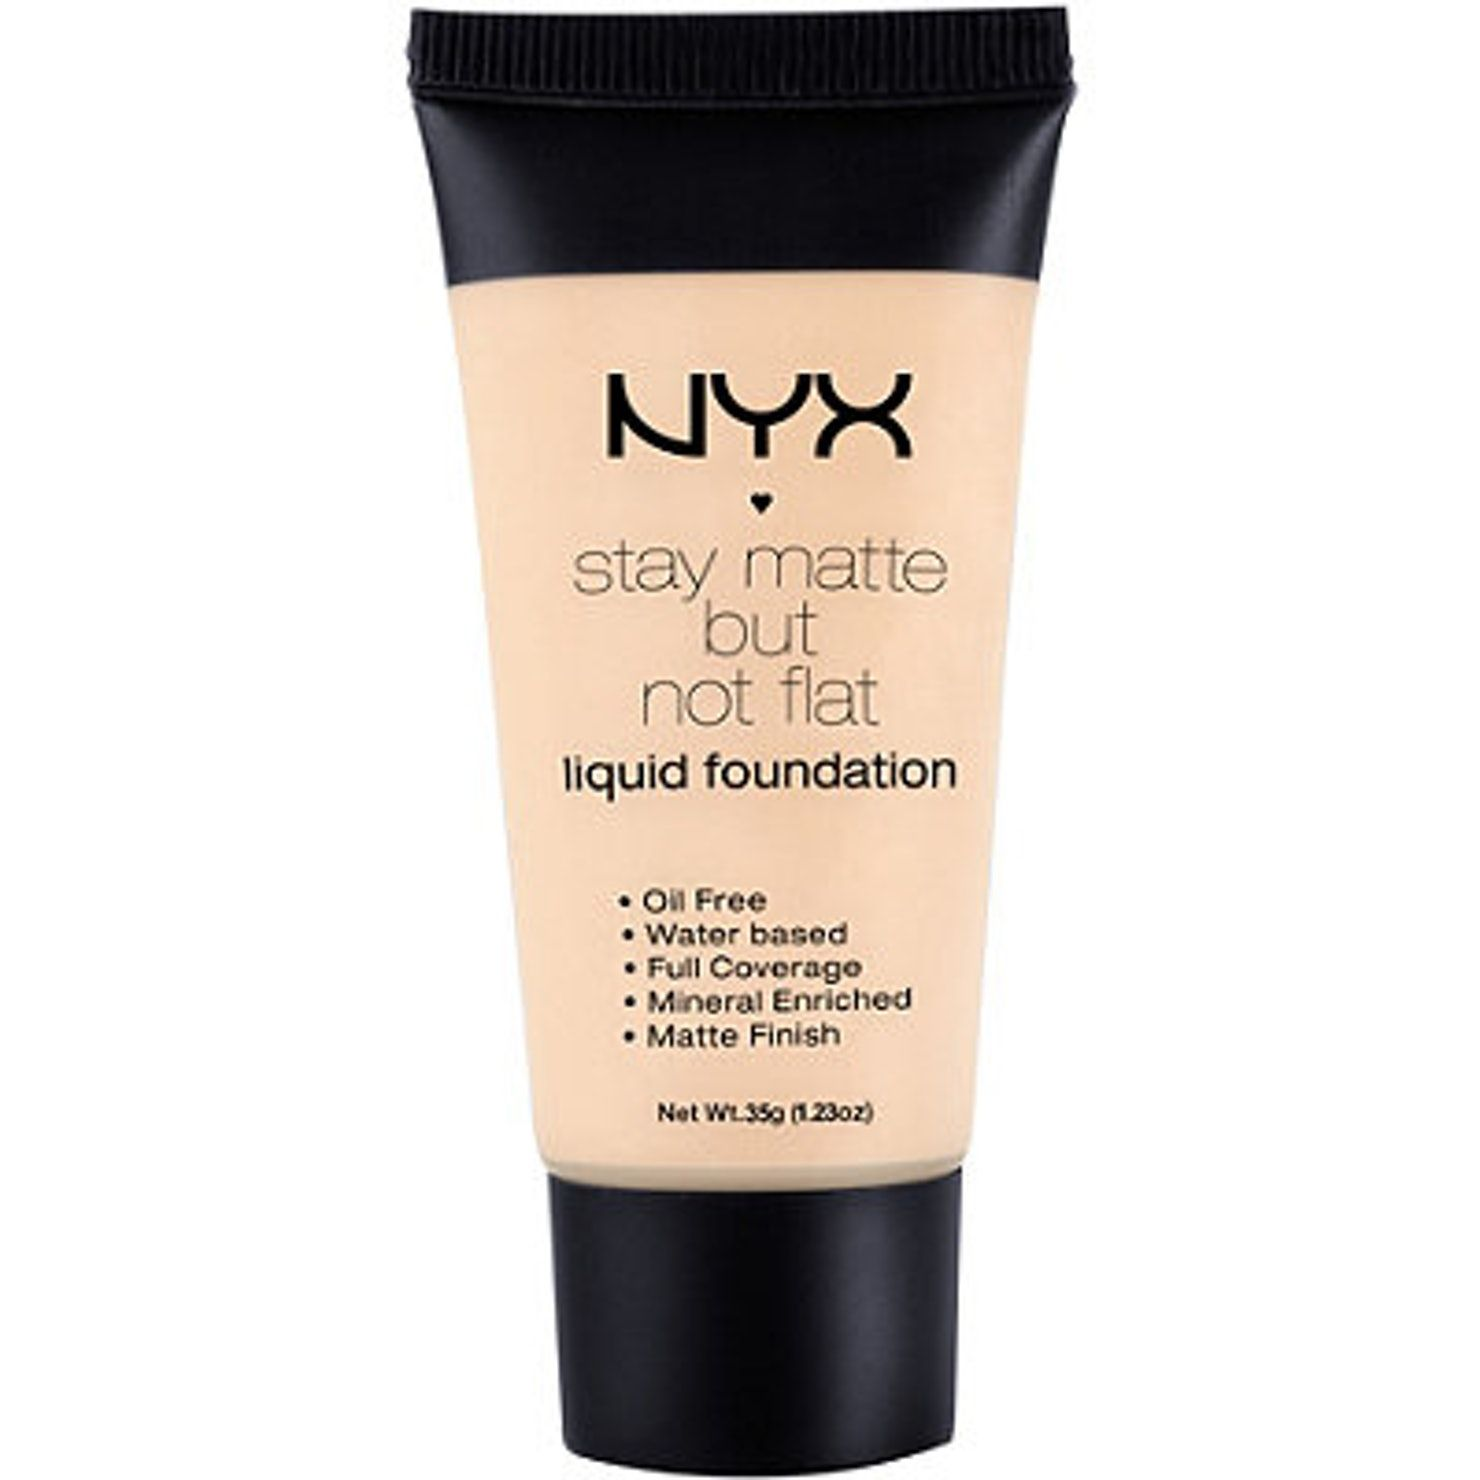 There S A Lot To Love About Summertime But Sweaty Melty Makeup Is Not On The Top Of My List If You Want To Maintain Fac Nyx Cosmetics Skin Makeup Nyx Makeup